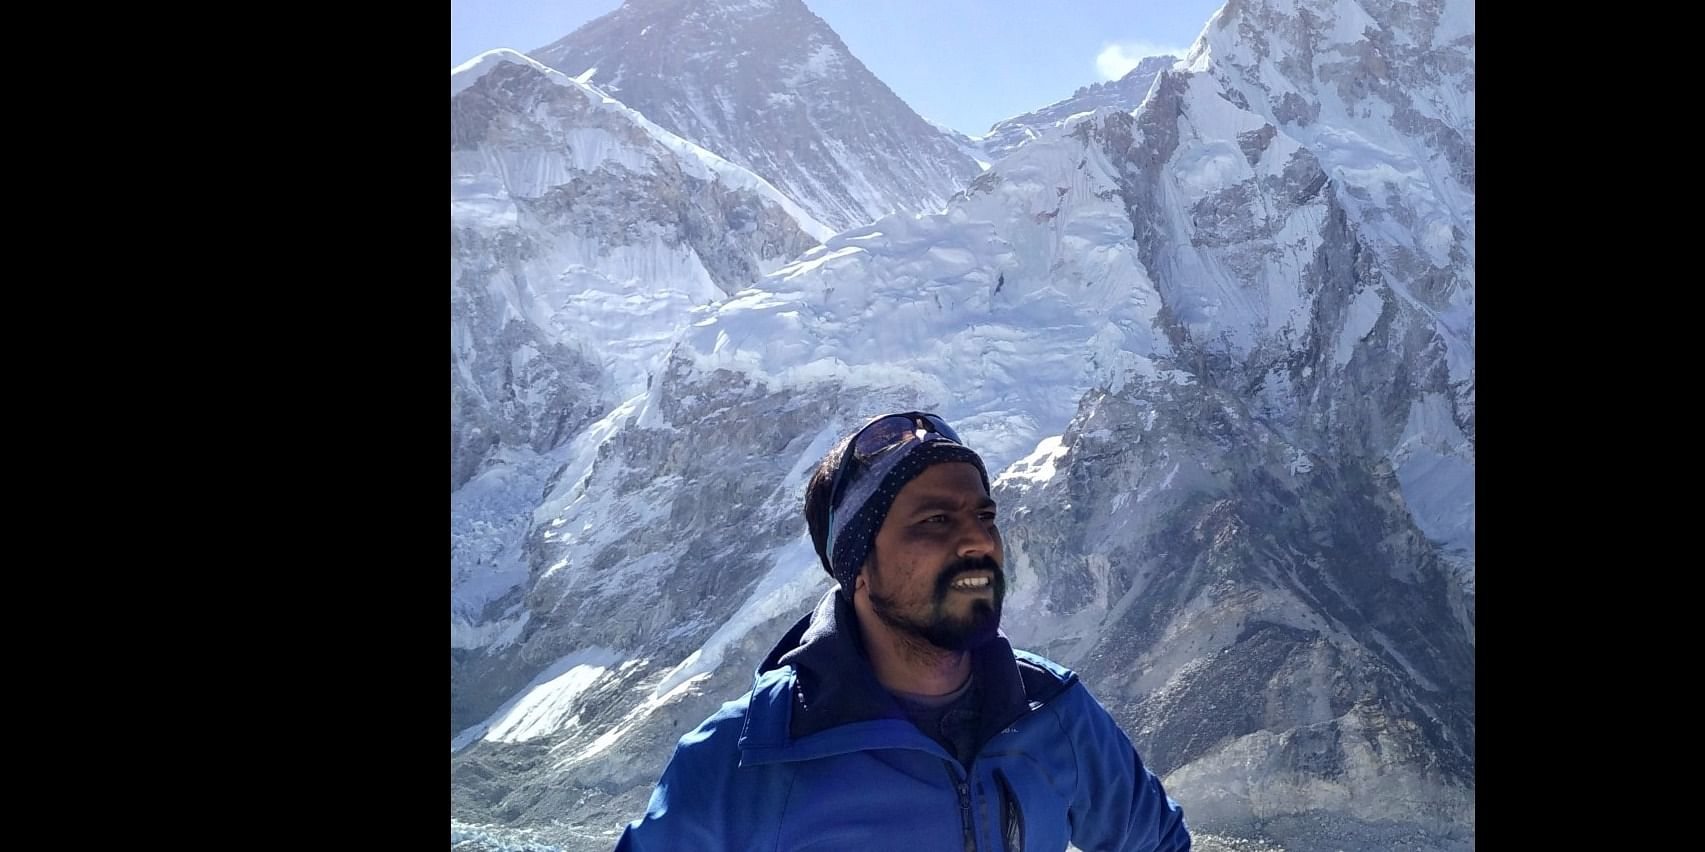 At Mt Everest